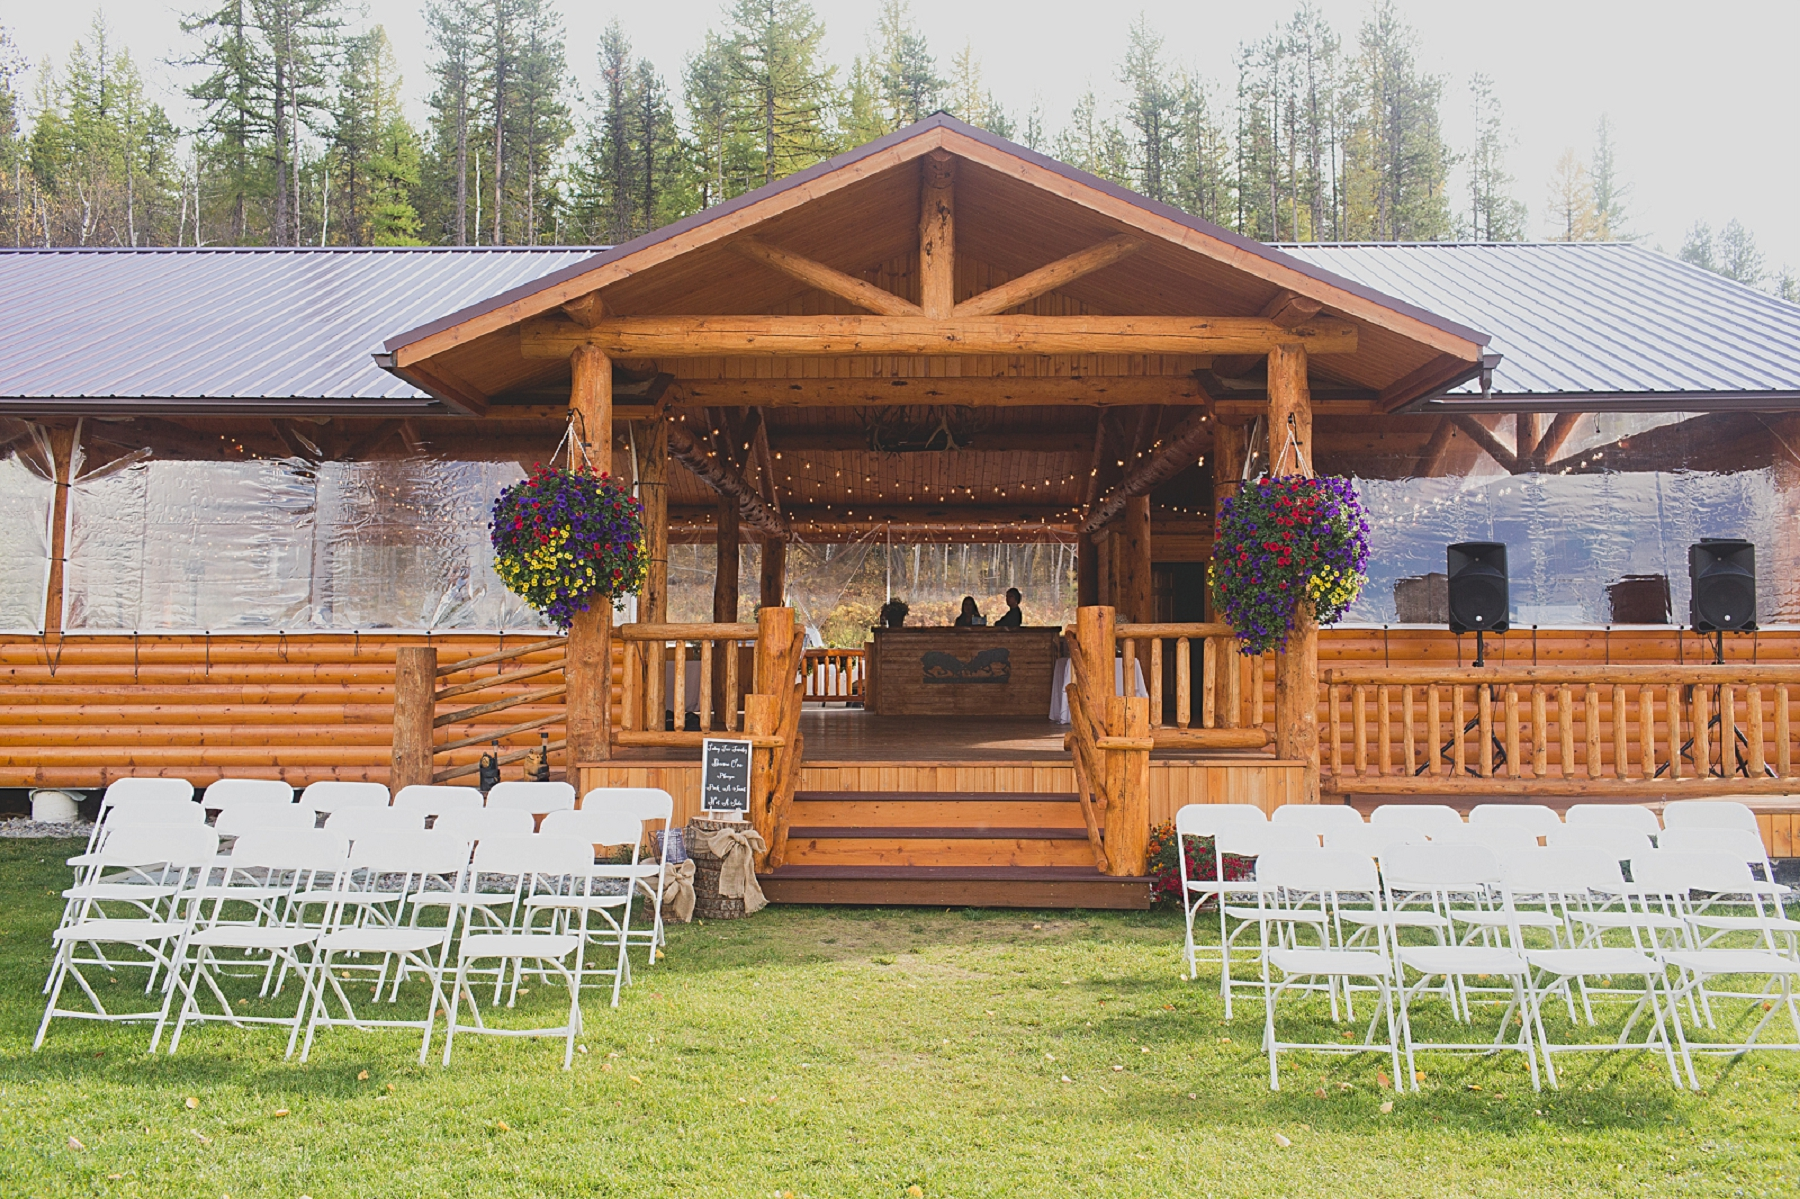 Jennifer_Mooney_photo_glacier_outdoor_center_wedding_montana_fall_elegant_rustic_romantic-66.jpg